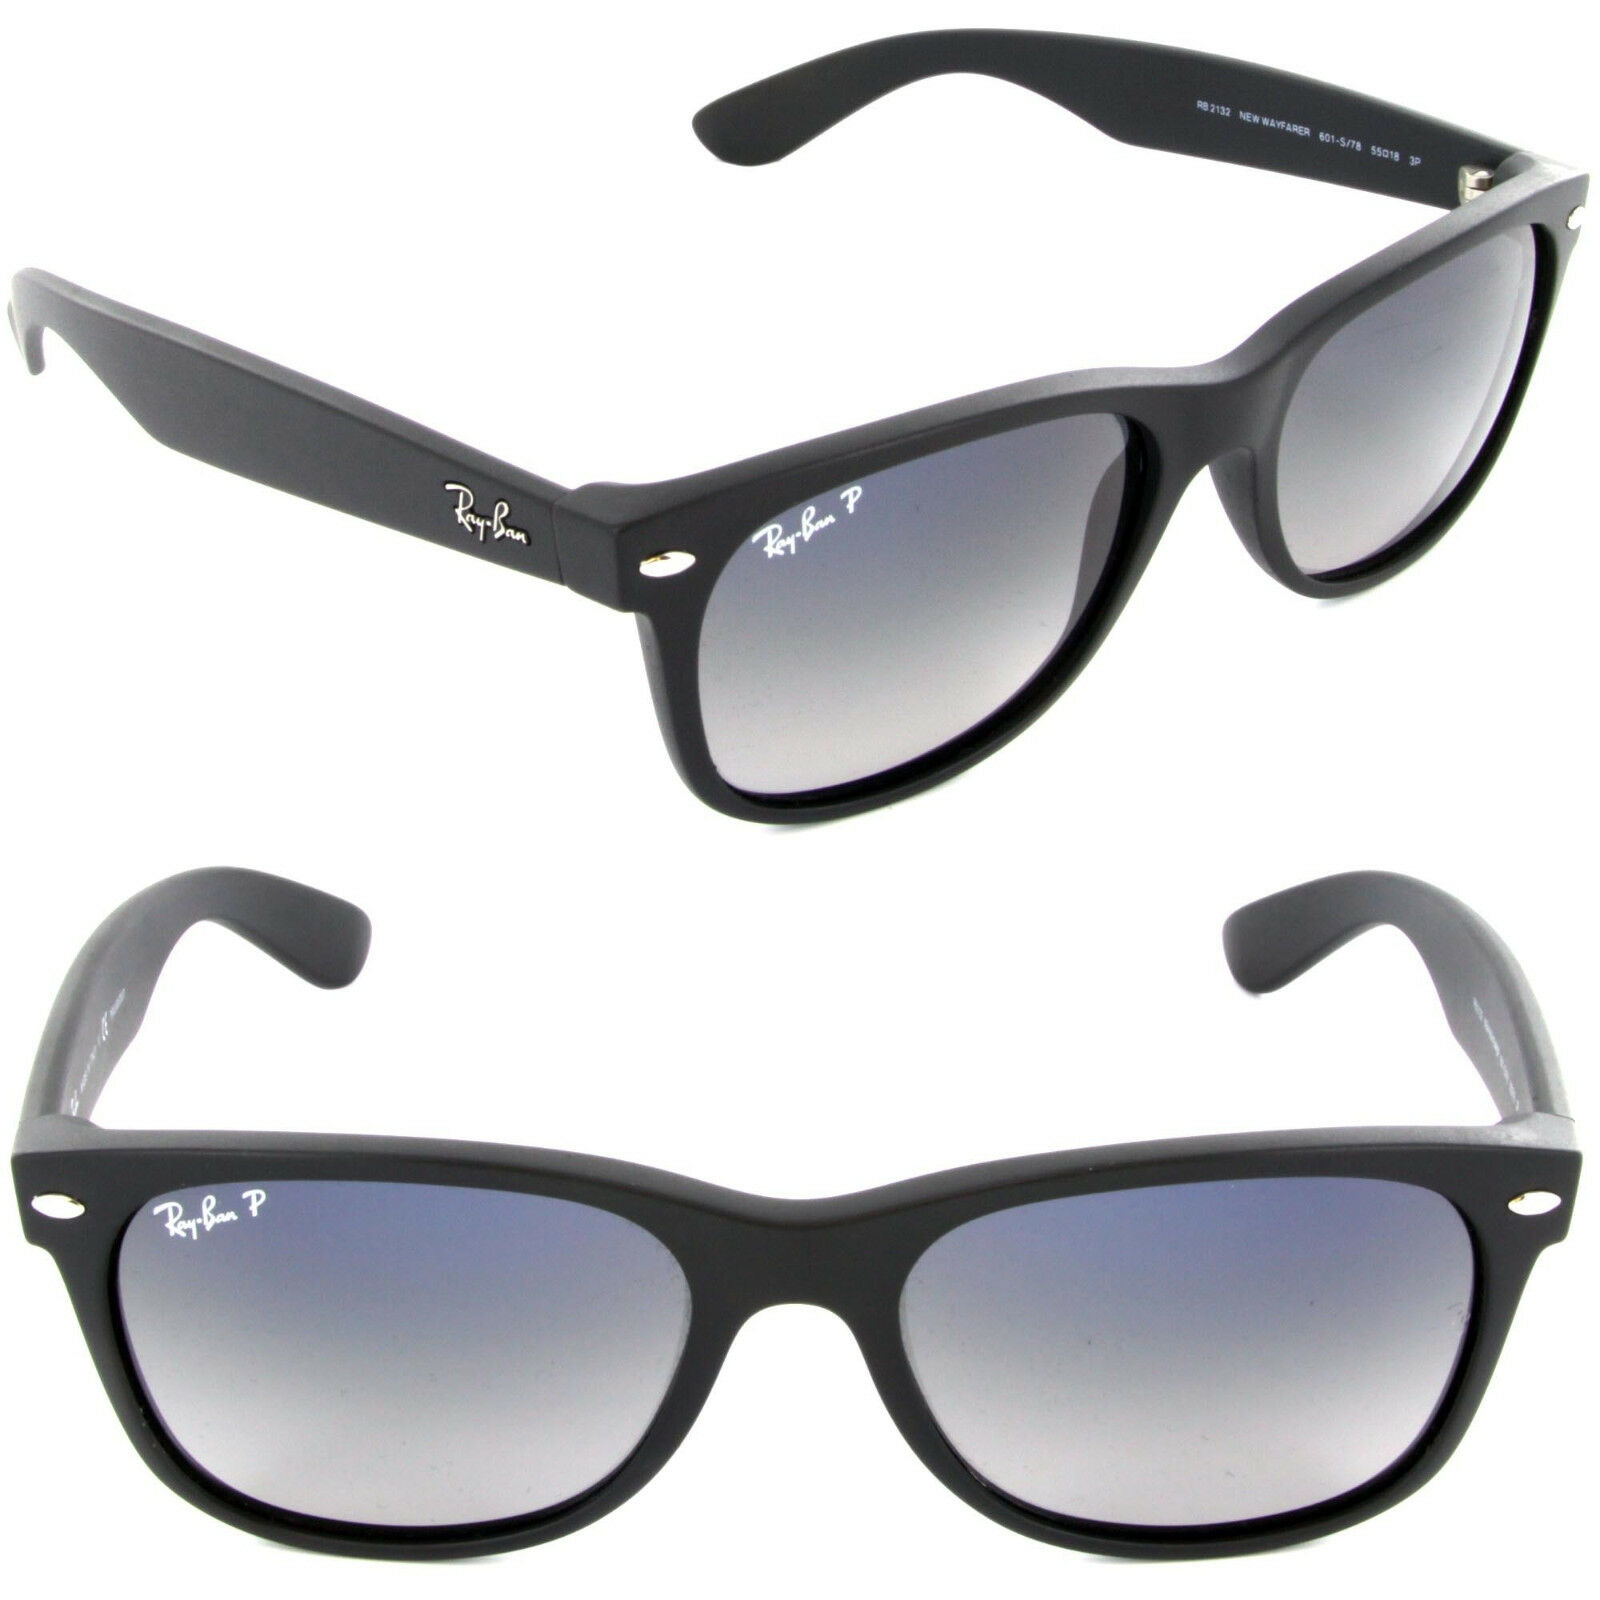 3d88e5e4e4 Ray-Ban RB2132 601S78 55mm Matte Black Polarized With Blue Gradient Wayfarer  Sunglasses for sale online